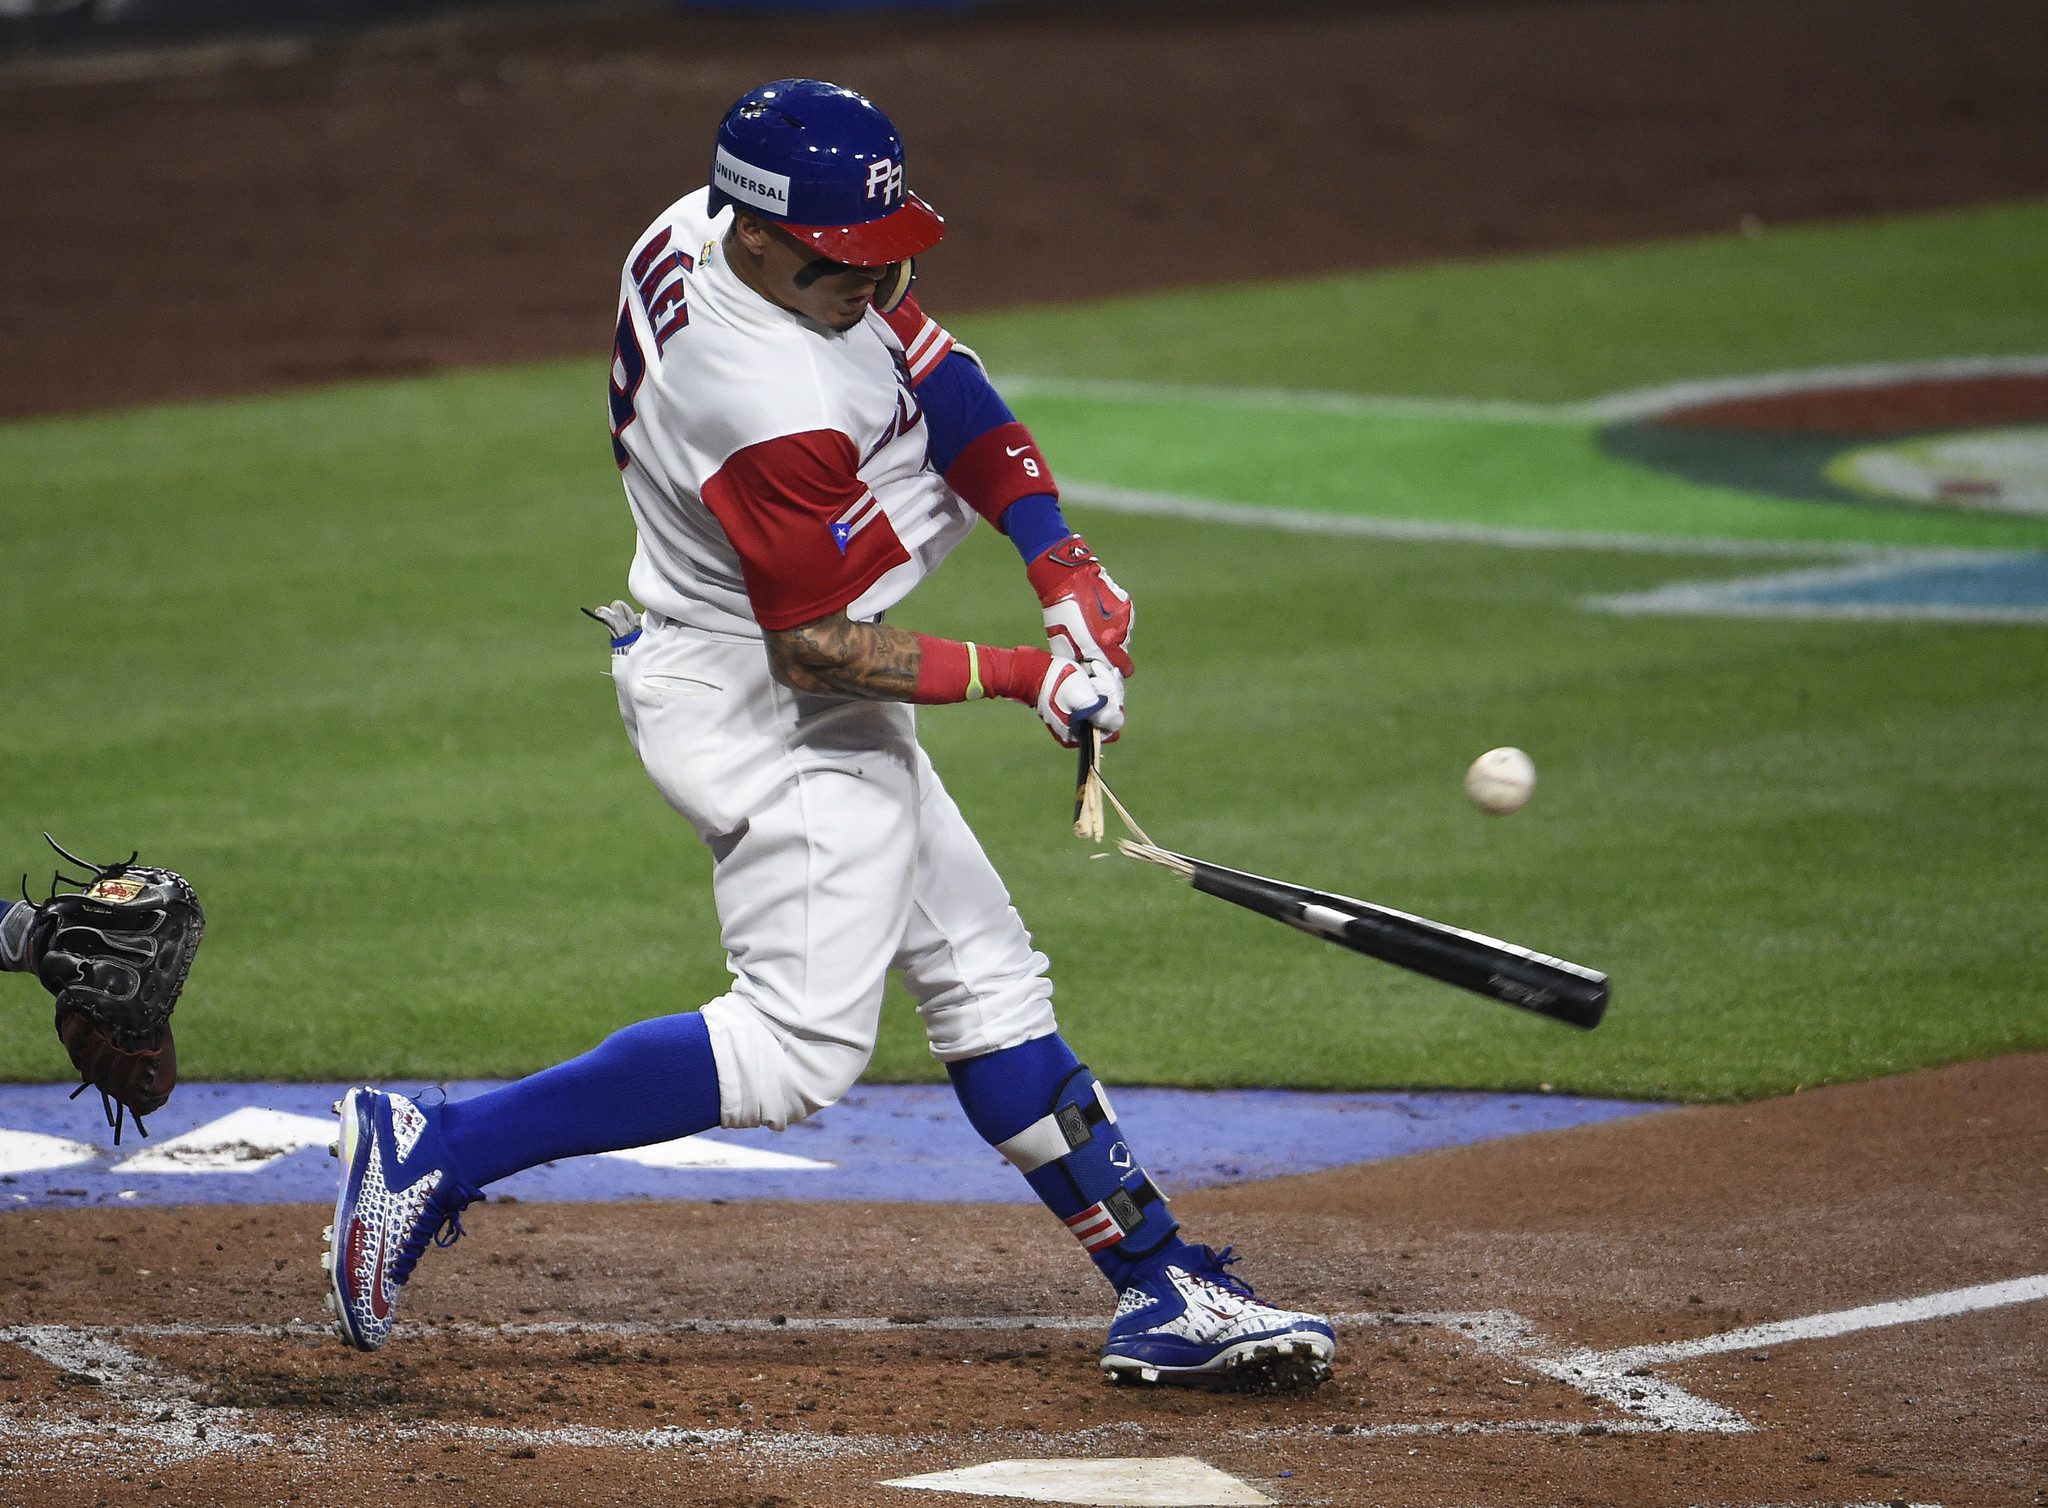 c401bb7bf Cubs' Javier Baez leads Puerto Rico to WBC semifinals - Baseball ...